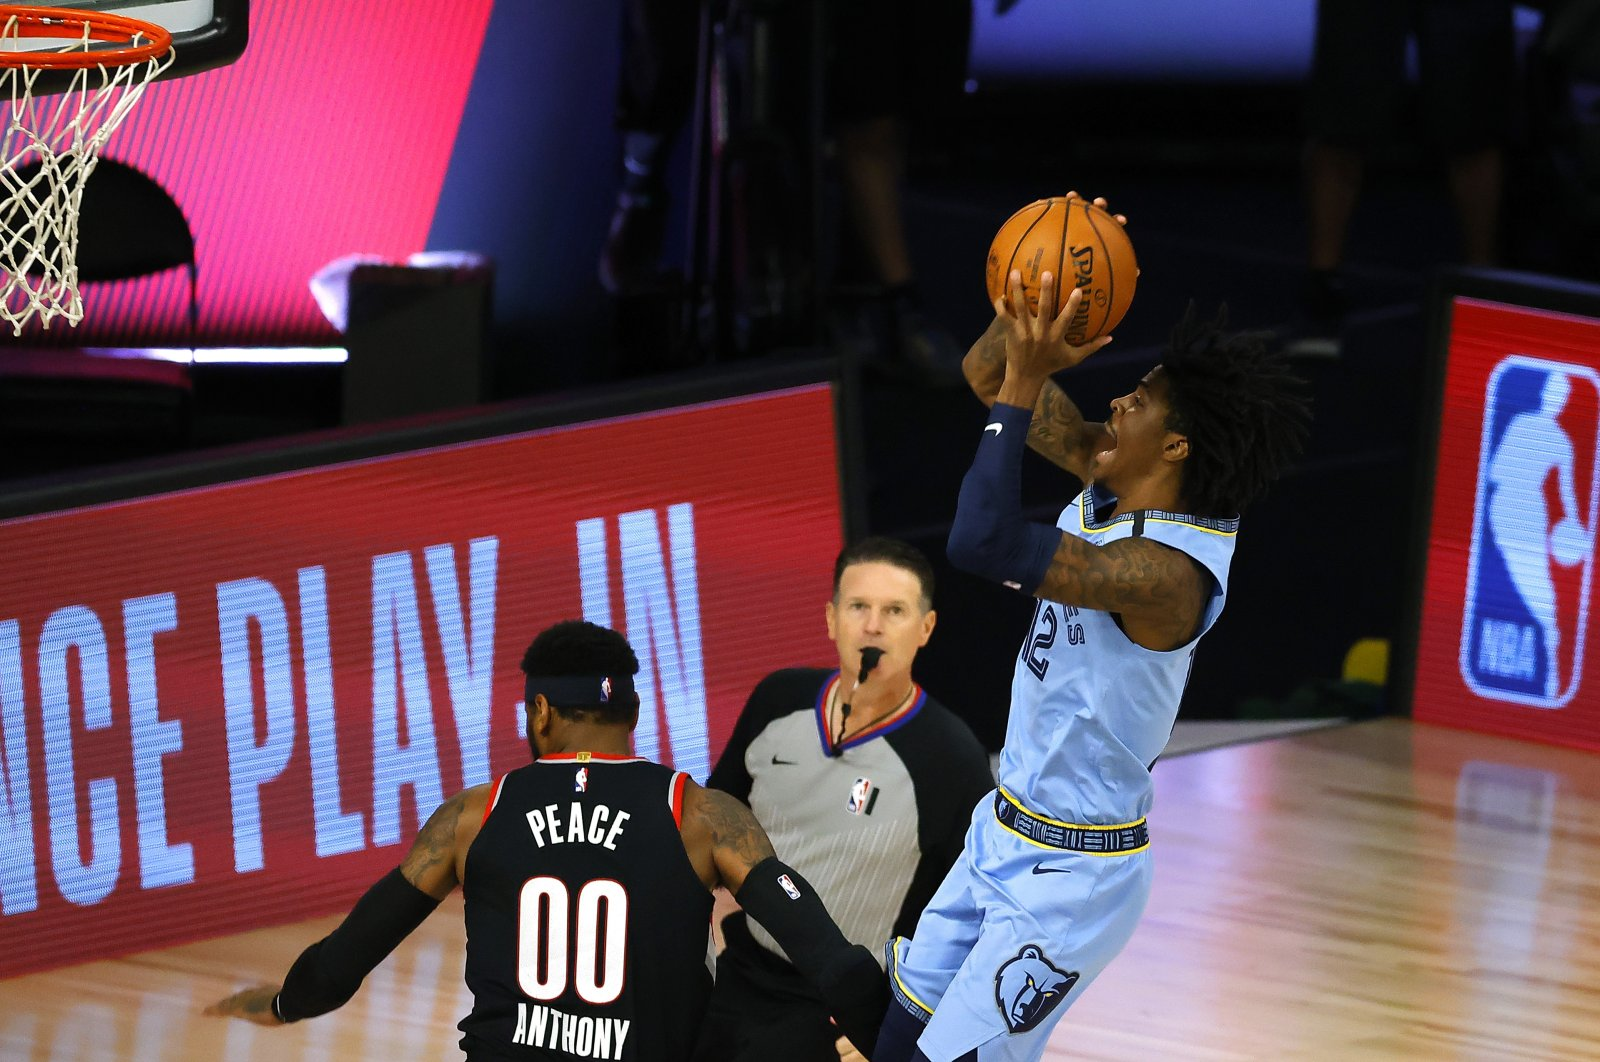 Memphis Grizzlies' Ja Morant (R) goes up for a shot against the Portland Trail Blazers, in Florida, U.S., Aug. 15, 2020. (AP Photo)